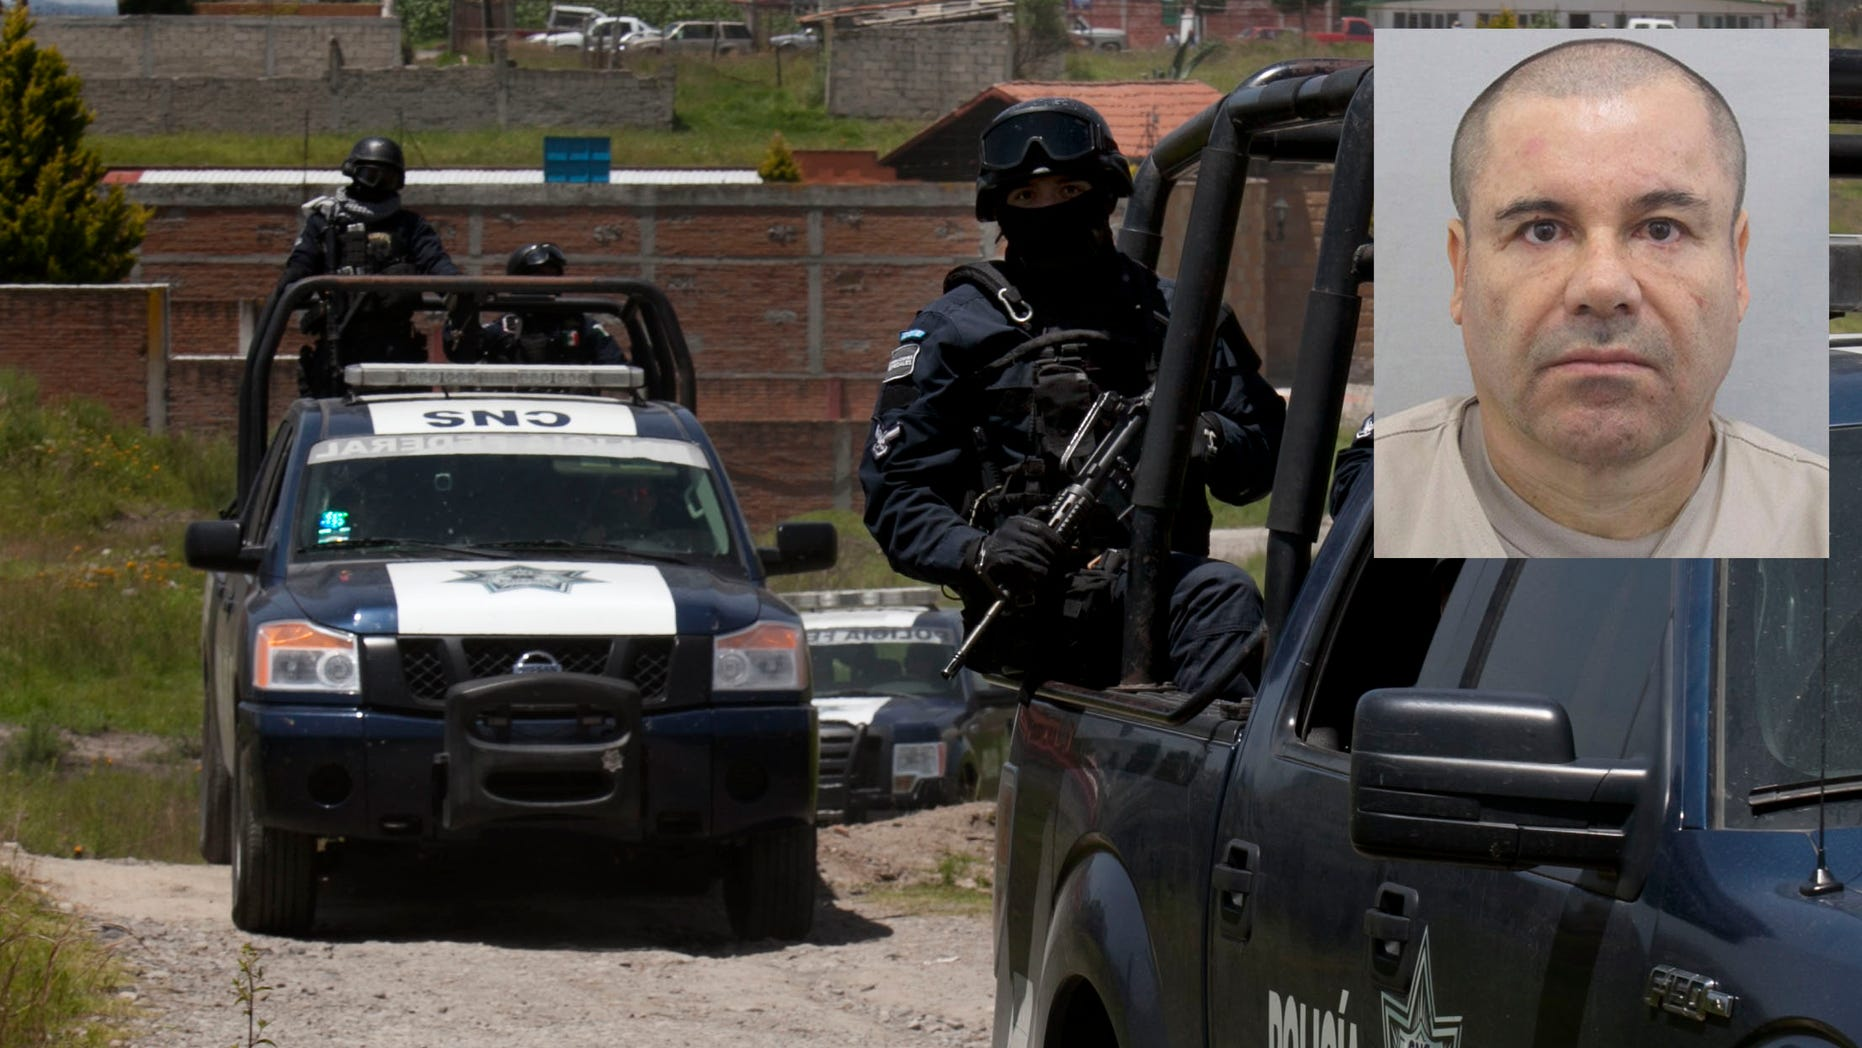 Federal Police stand guard near a half-built house near the Altiplano maximum security prison in Almoloya, July 13, 2015.